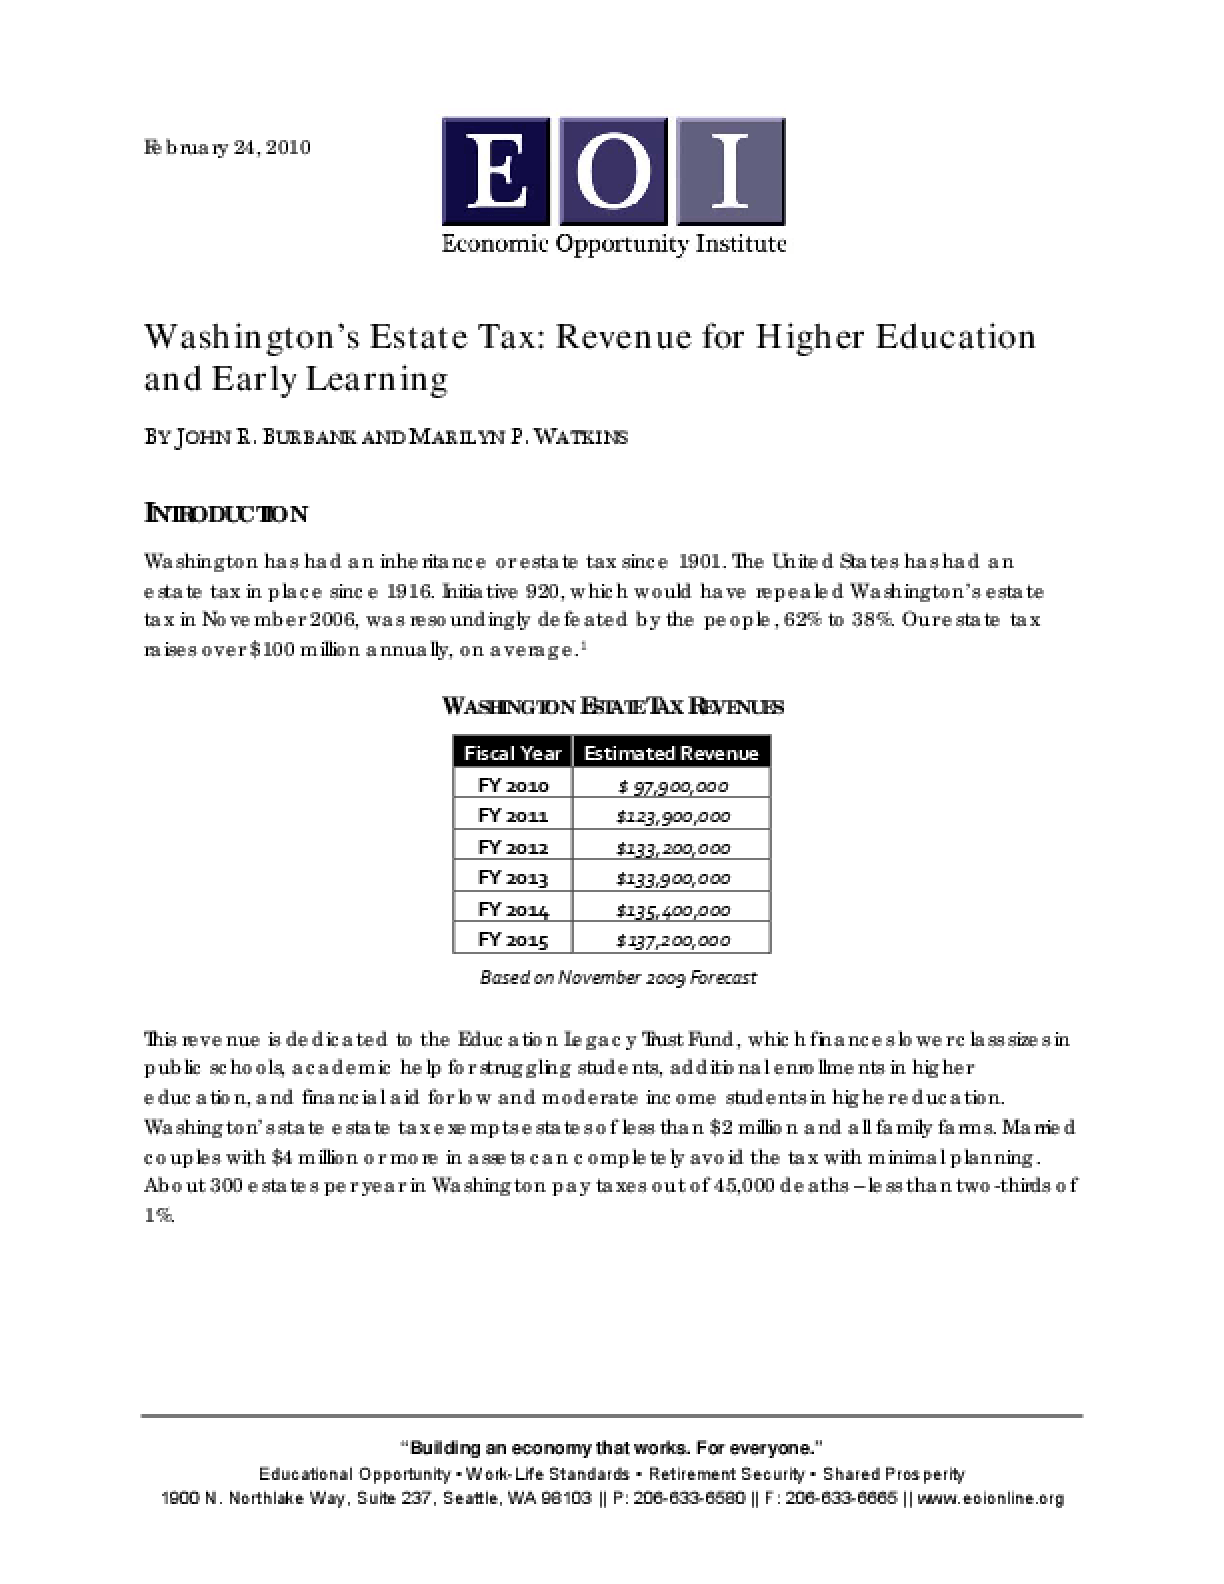 Washington's Estate Tax: Revenue for Higher Education and Early Learning